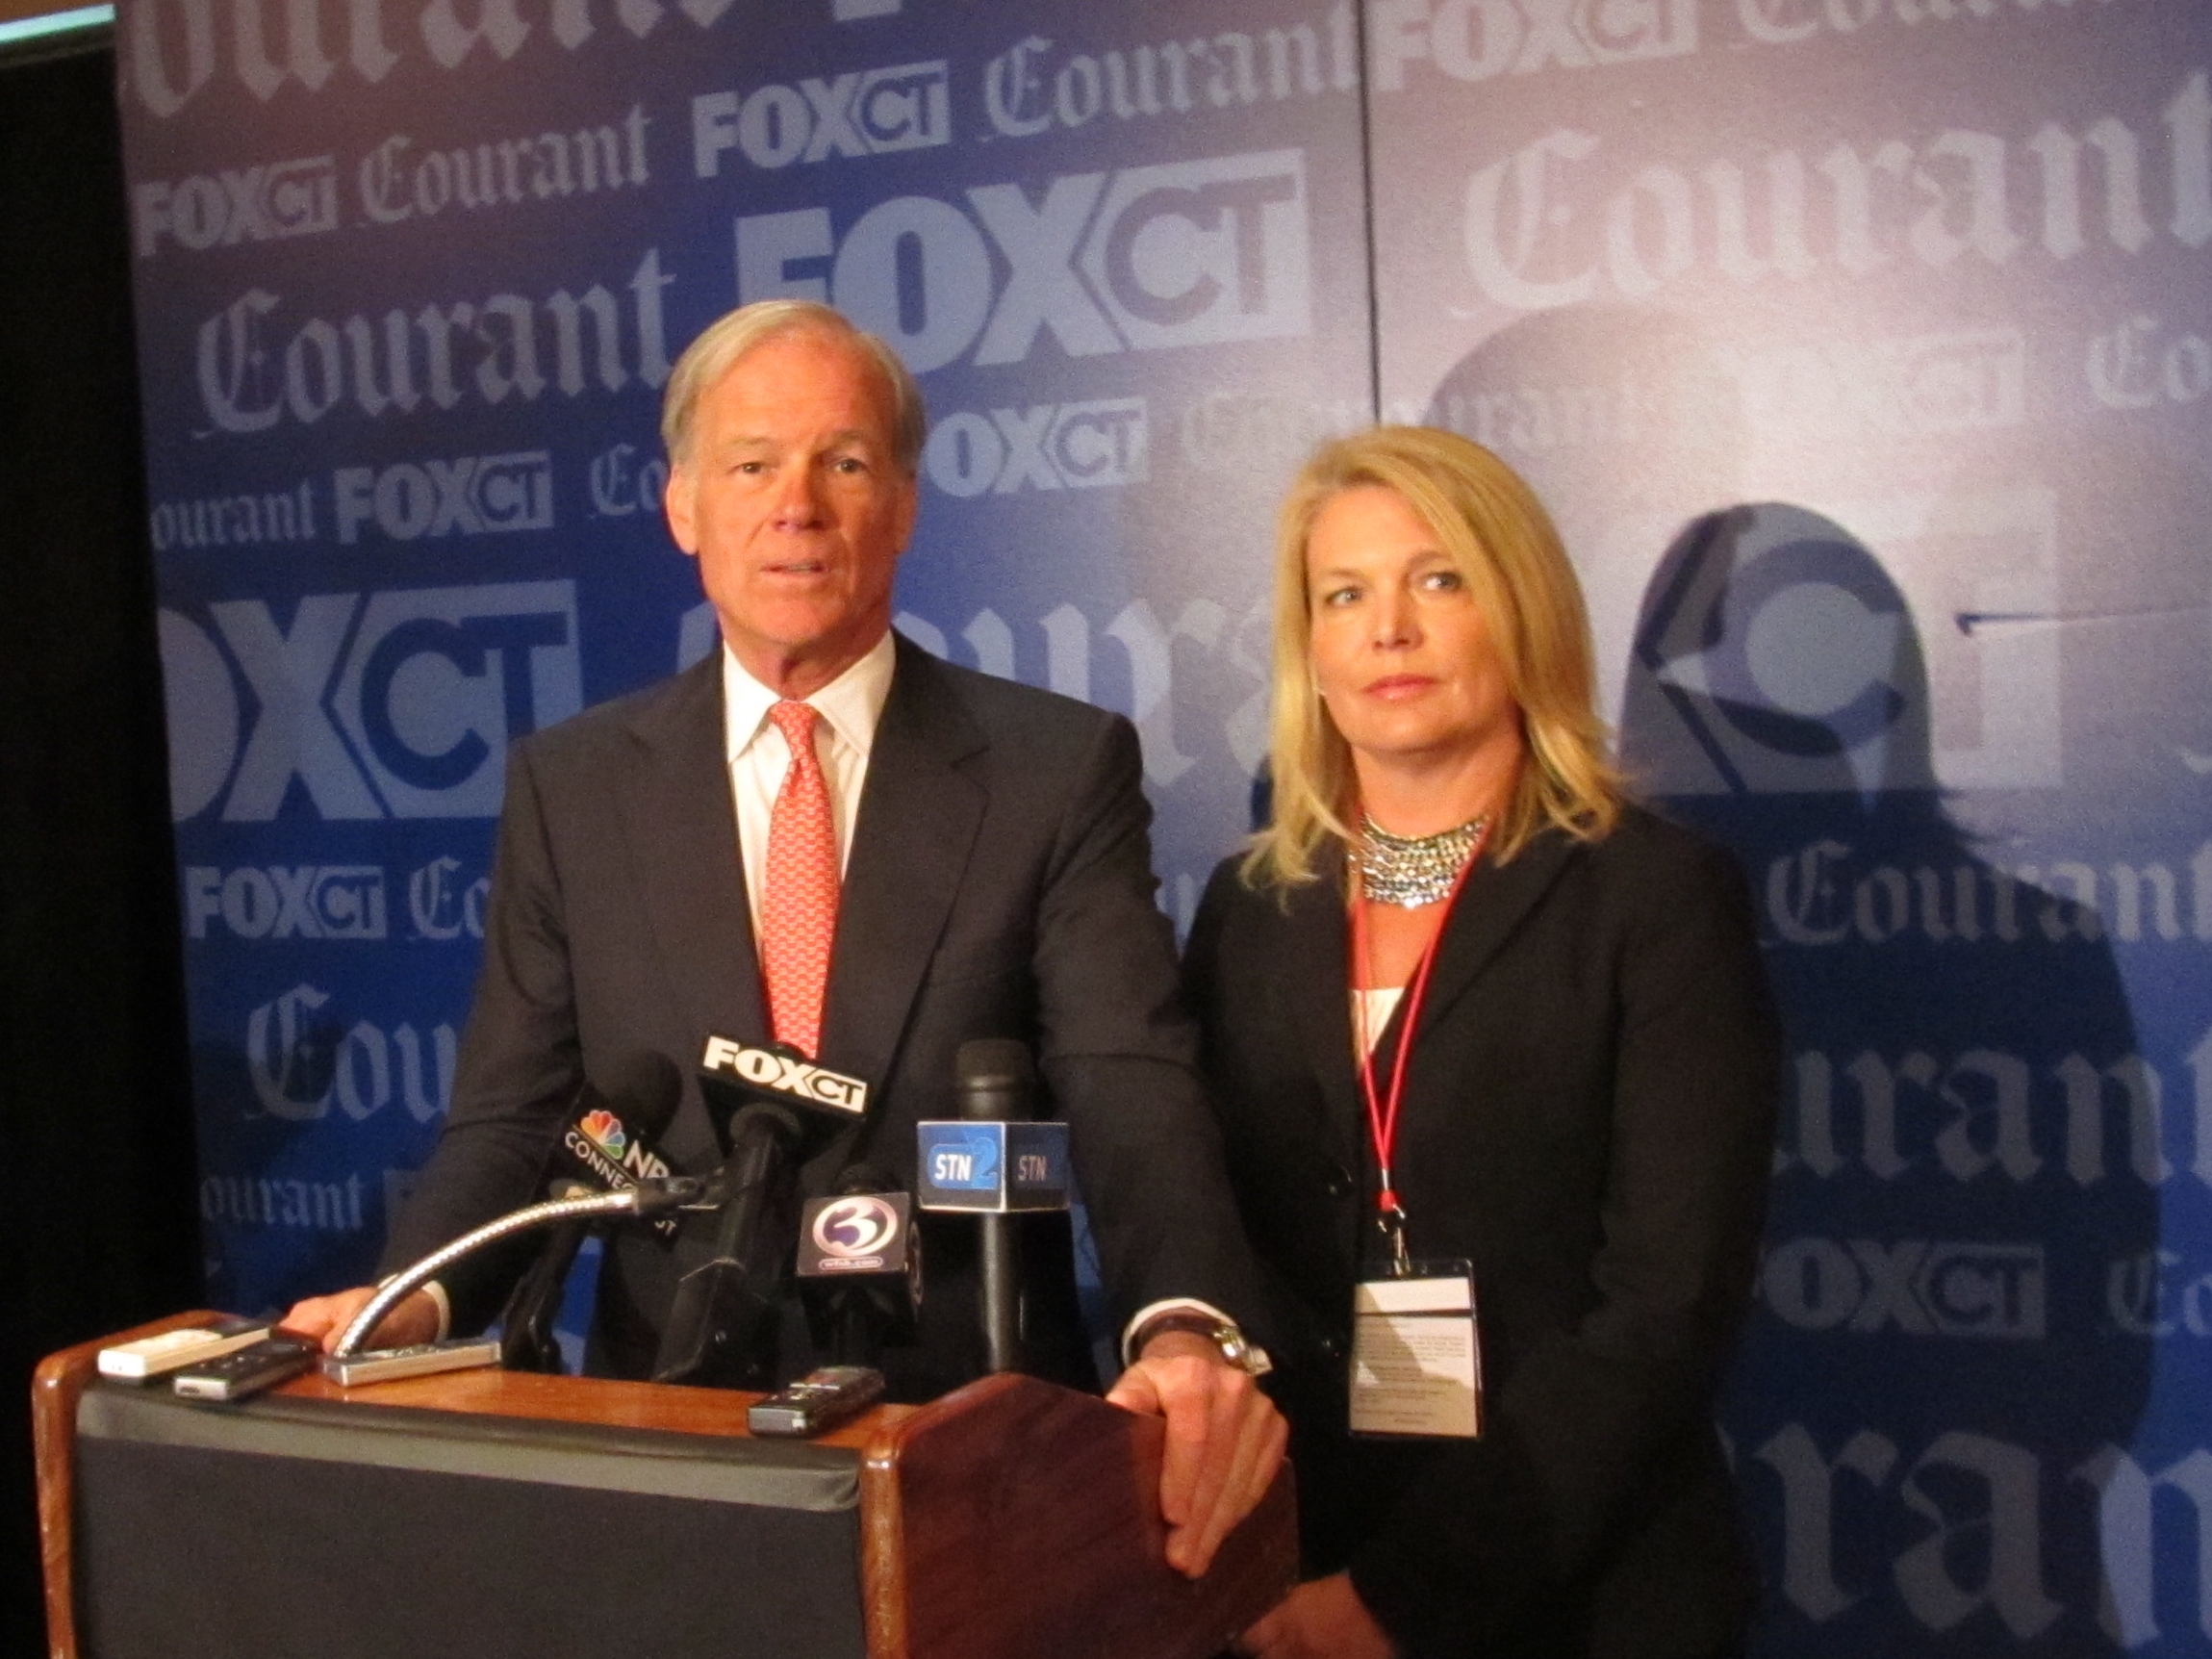 Tom Foley talked to reporters, accompanied by his running mate, Heather Bond Somers.